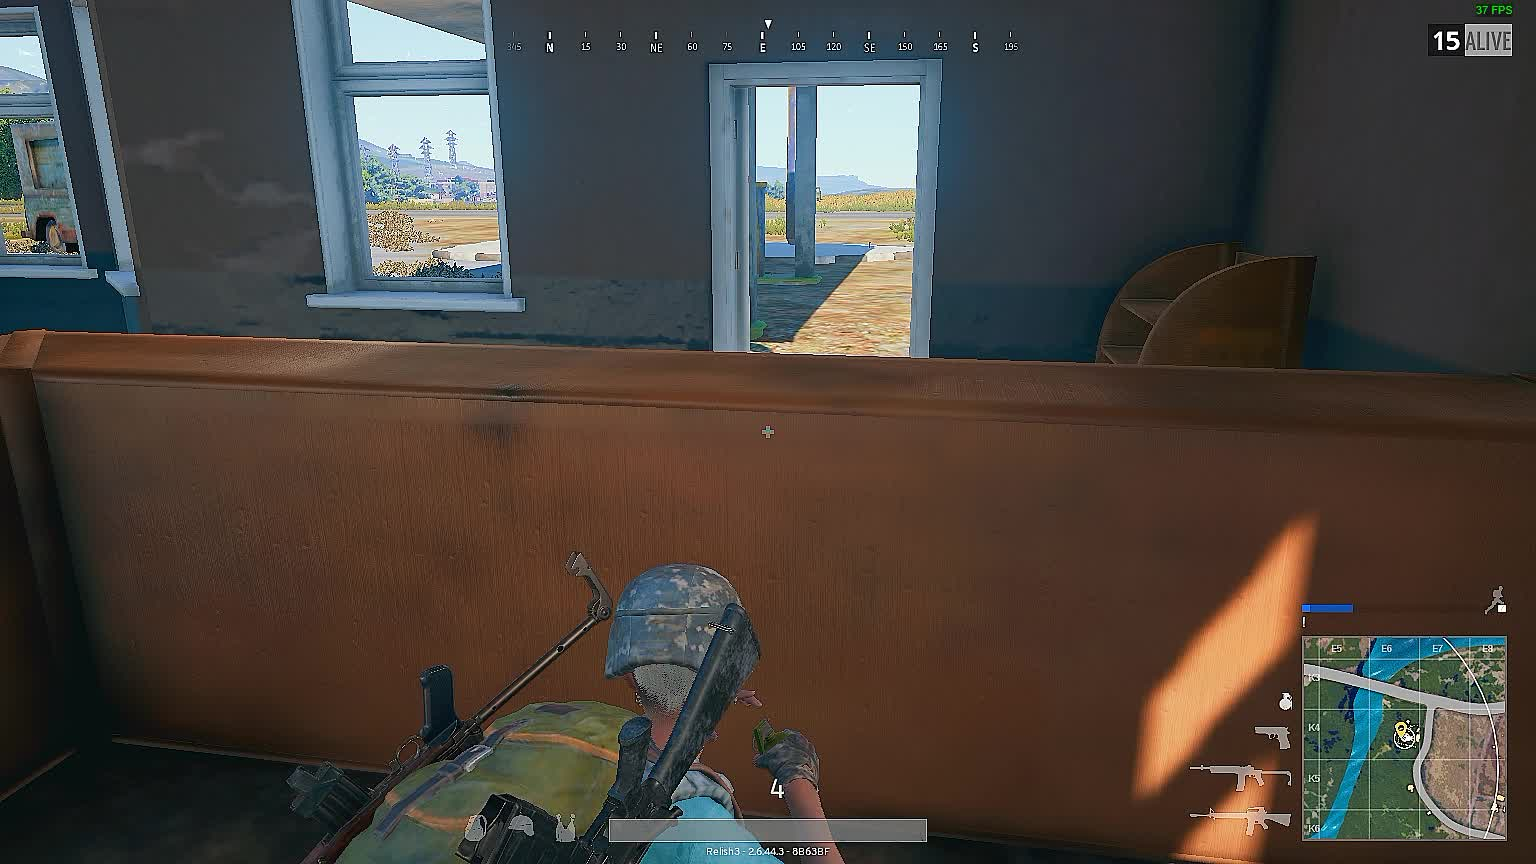 PLAYERUNKNOWN'S BATTLEGROUNDS 11.26.2017 - 06.56.03.71.DVR GIFs